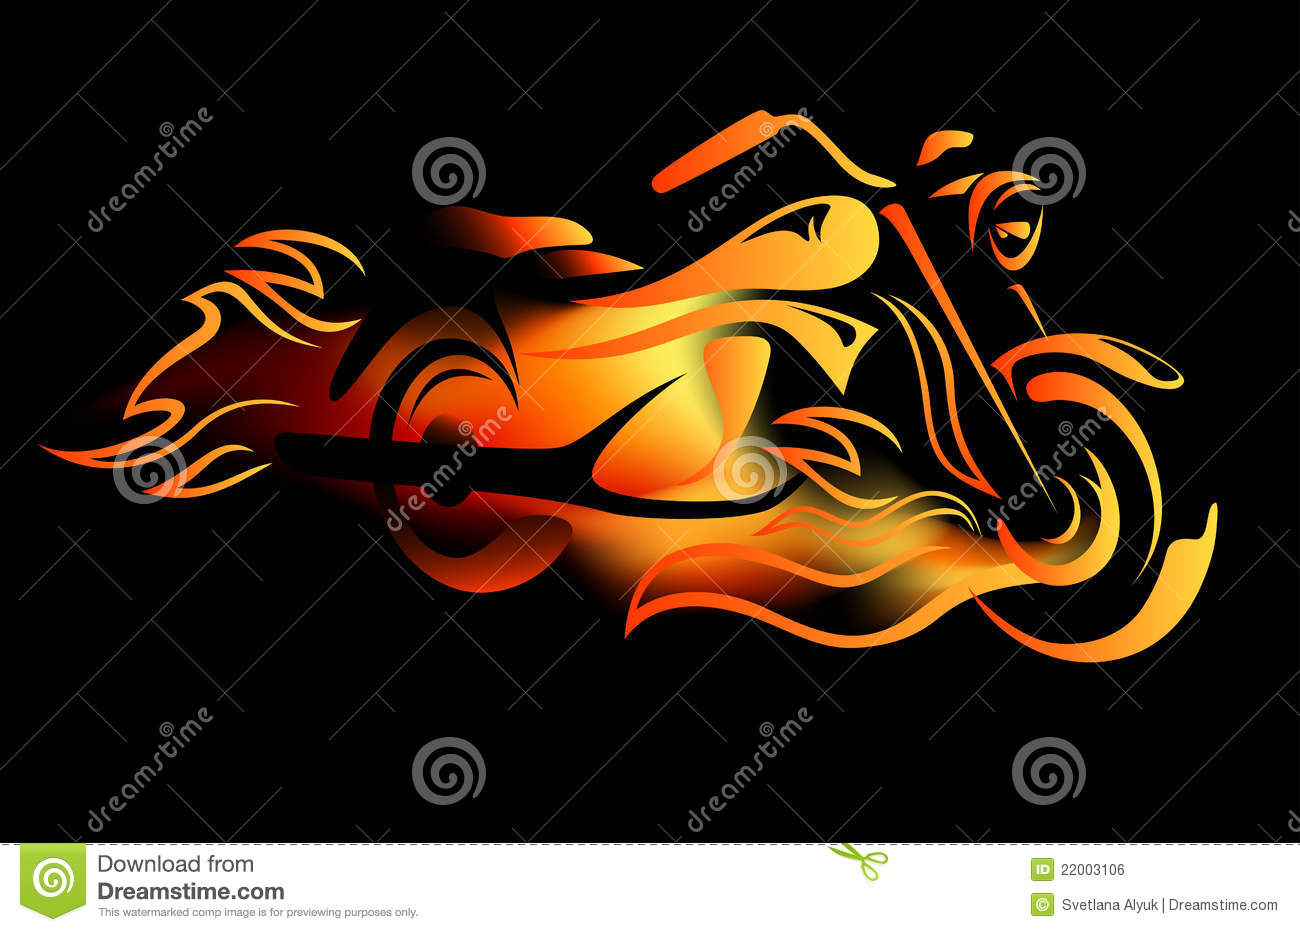 Fiery bike stock illustrations 72 fiery bike stock illustrations vectors clipart dreamstime